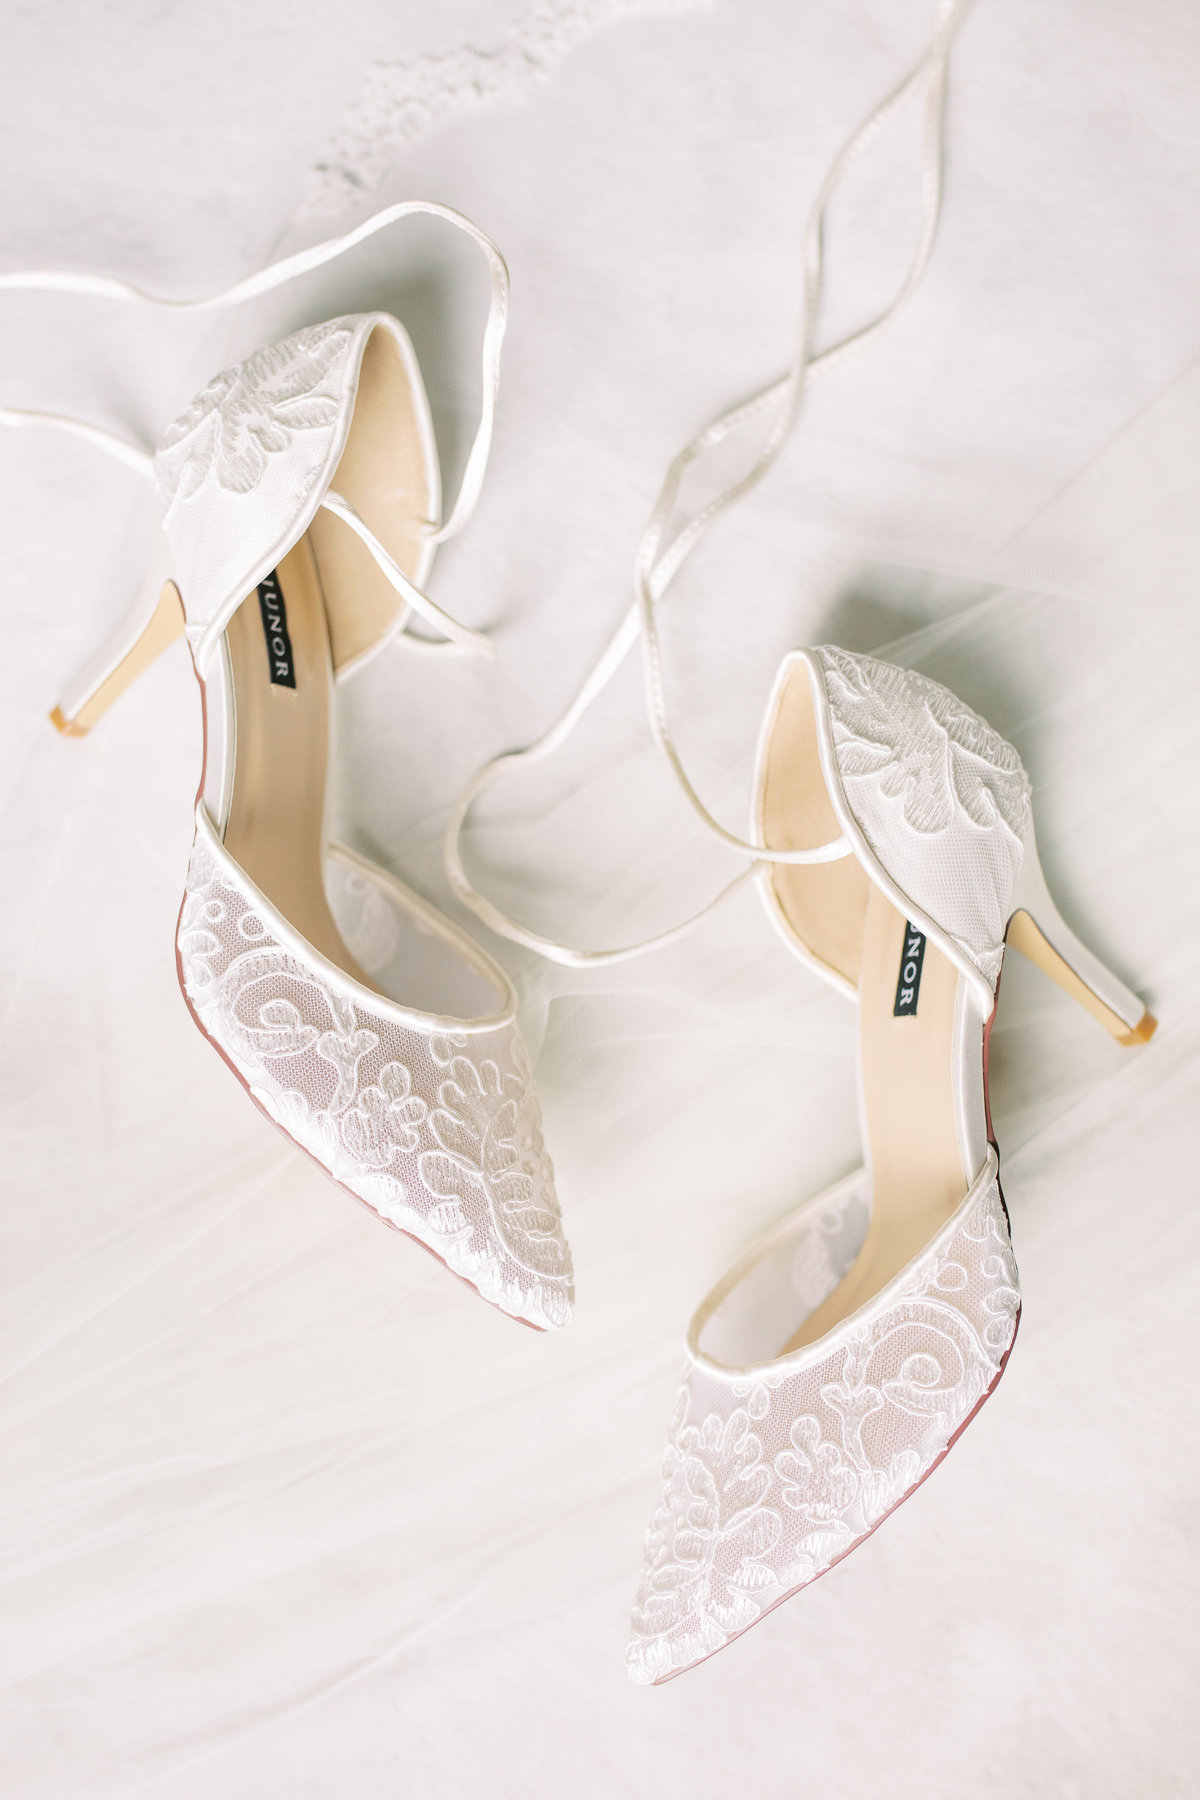 Detail shot of a bride's shoes laying  on her veil on the wedding day